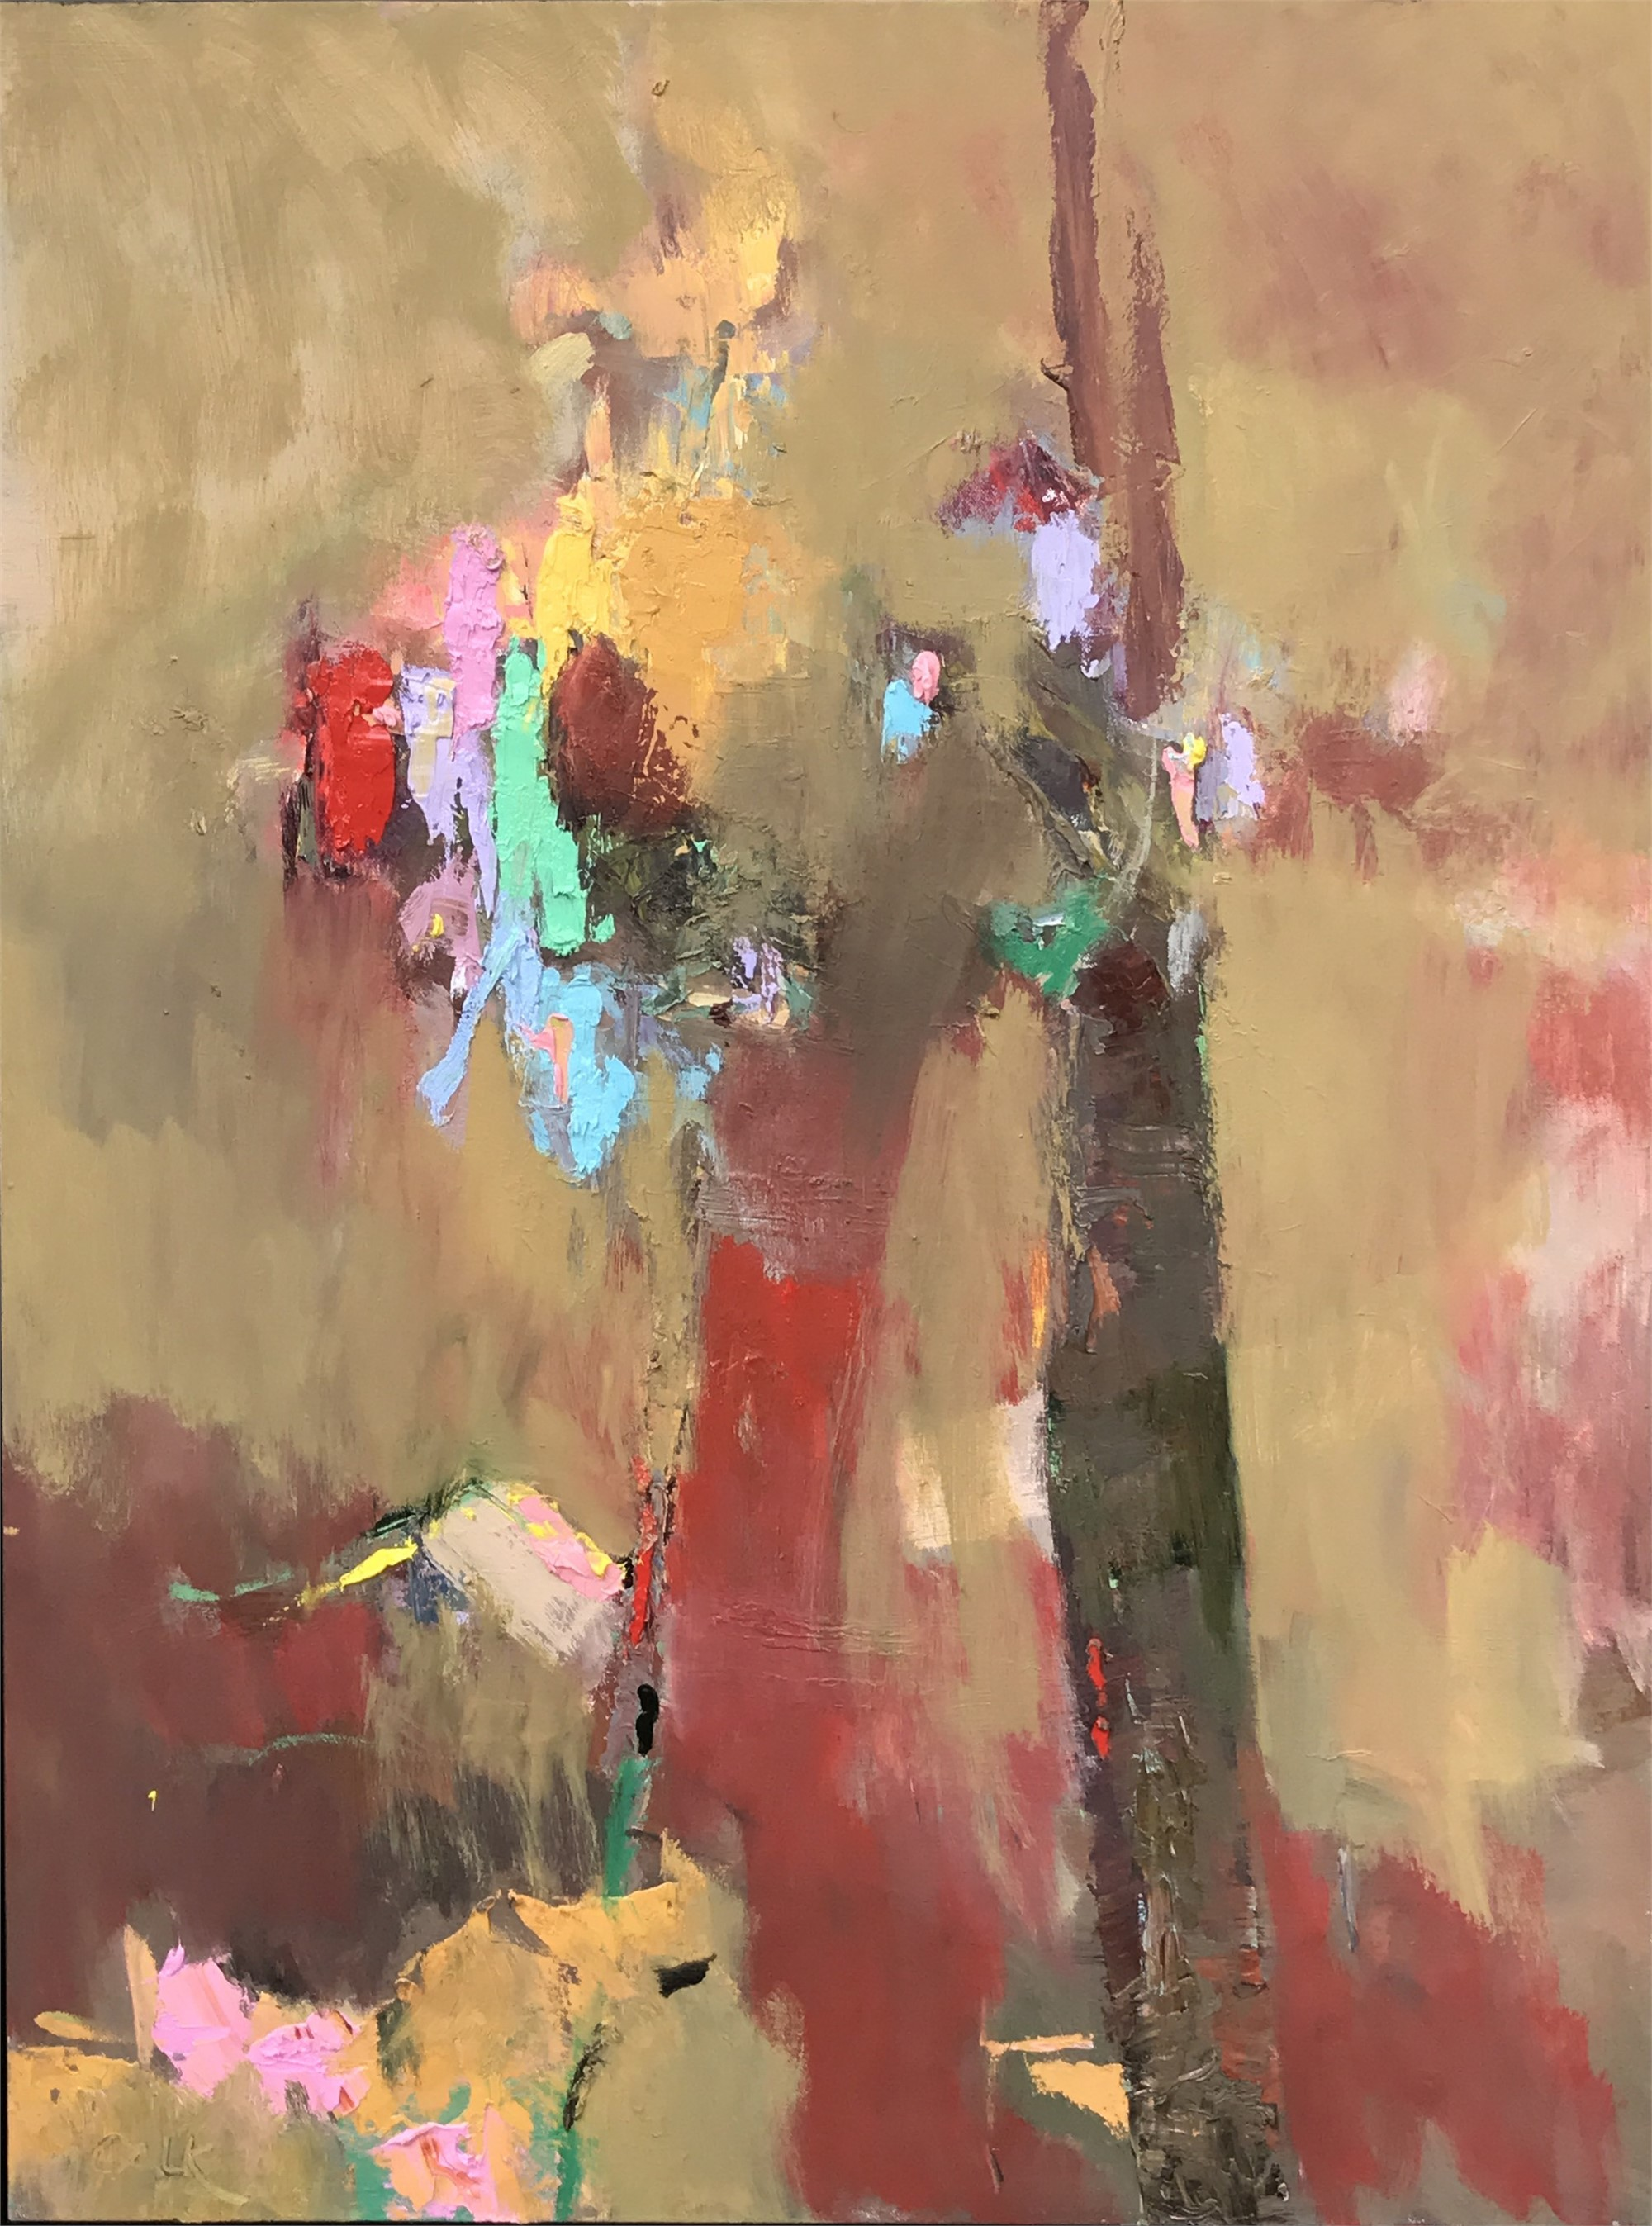 In The Beginning - God's Seeds by James Calk